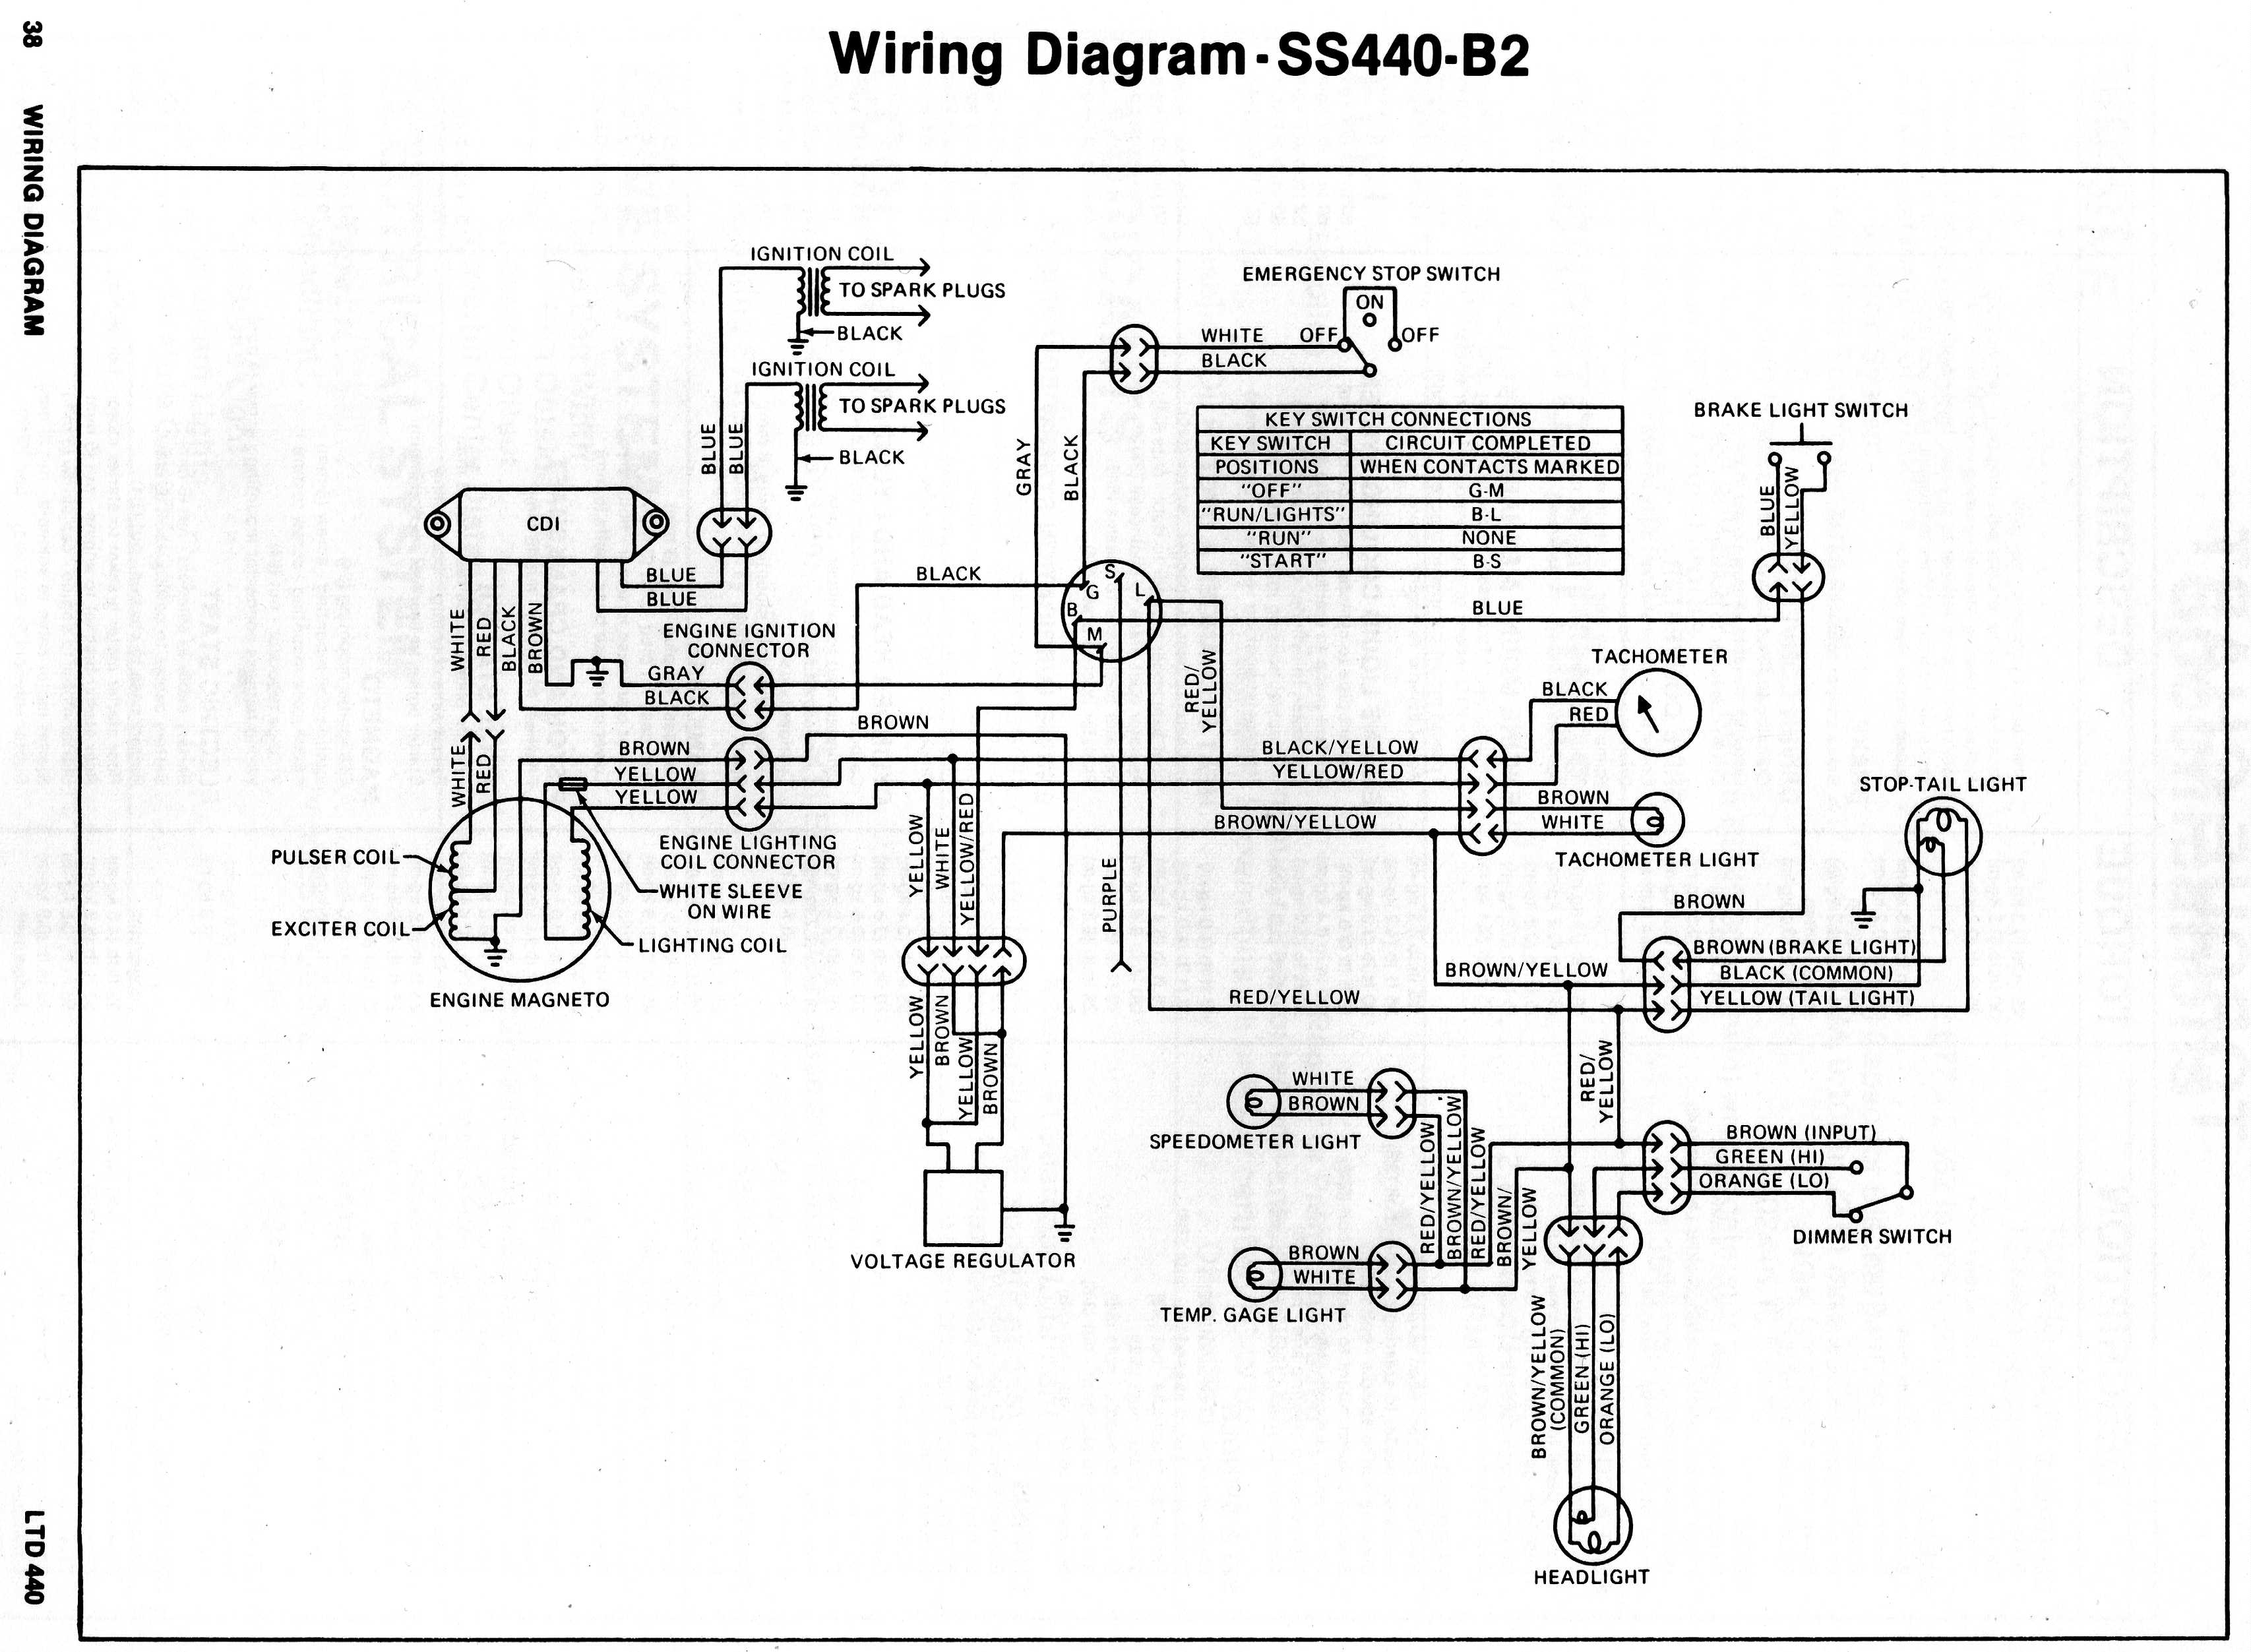 Ja moreover Ss B in addition Orig moreover Kawasaki Mule Wiring Diagram Kawasaki Mule Wiring Diagram Fresh Yamaha Banshee Wiring Diagram Best Chinese Atv Wiring Diagram T furthermore New Vacuum Fuel Pump Gas Pump Replaces For Kawasaki Mule. on kawasaki mule 550 wiring diagram